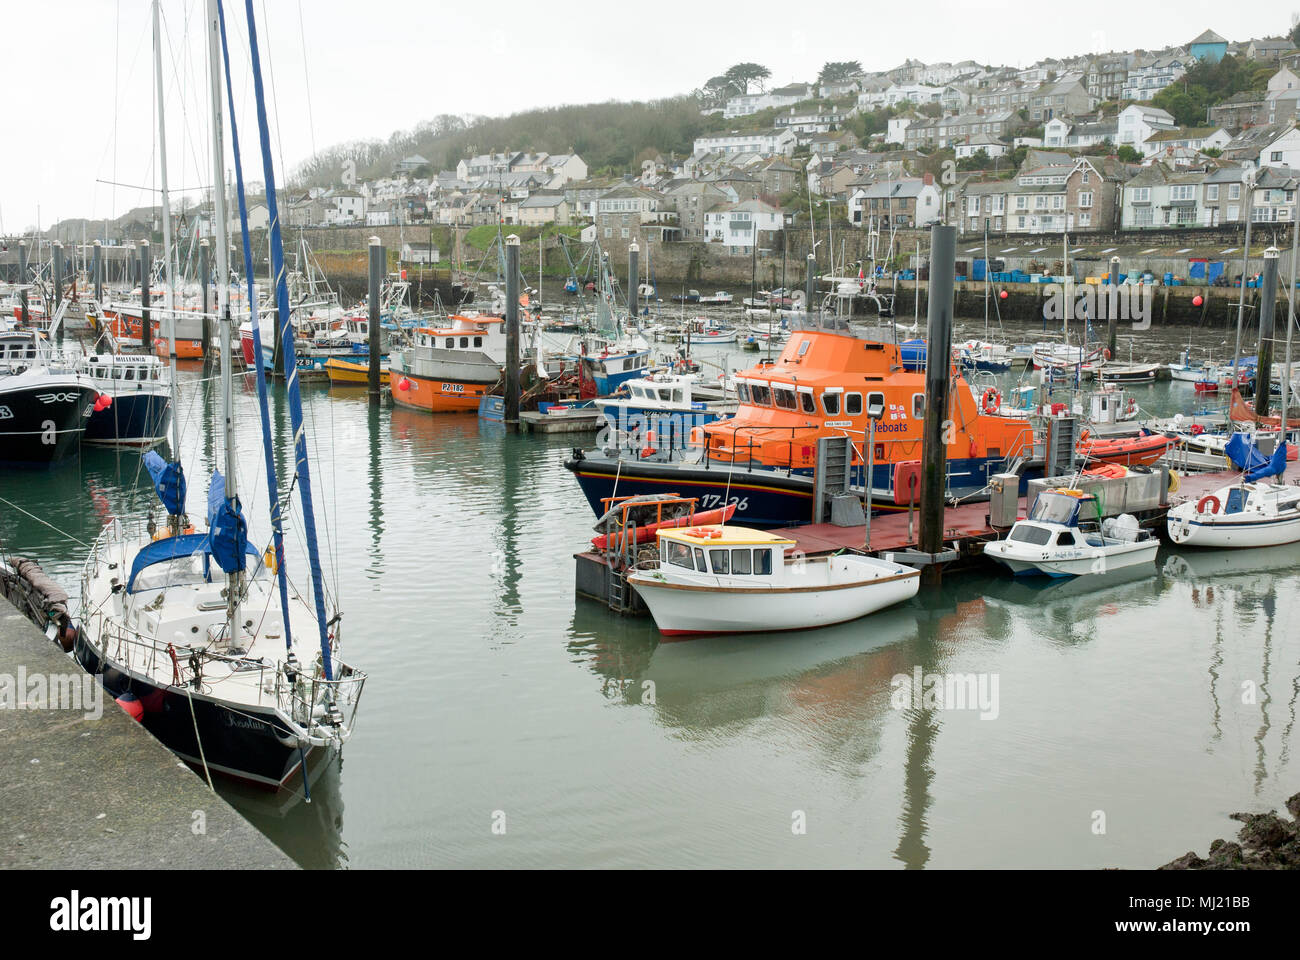 A variety of fishing, boats, yachts and pleasure craft moored in Newlyn Harbour with the town of newlyn in the background. Stock Photo